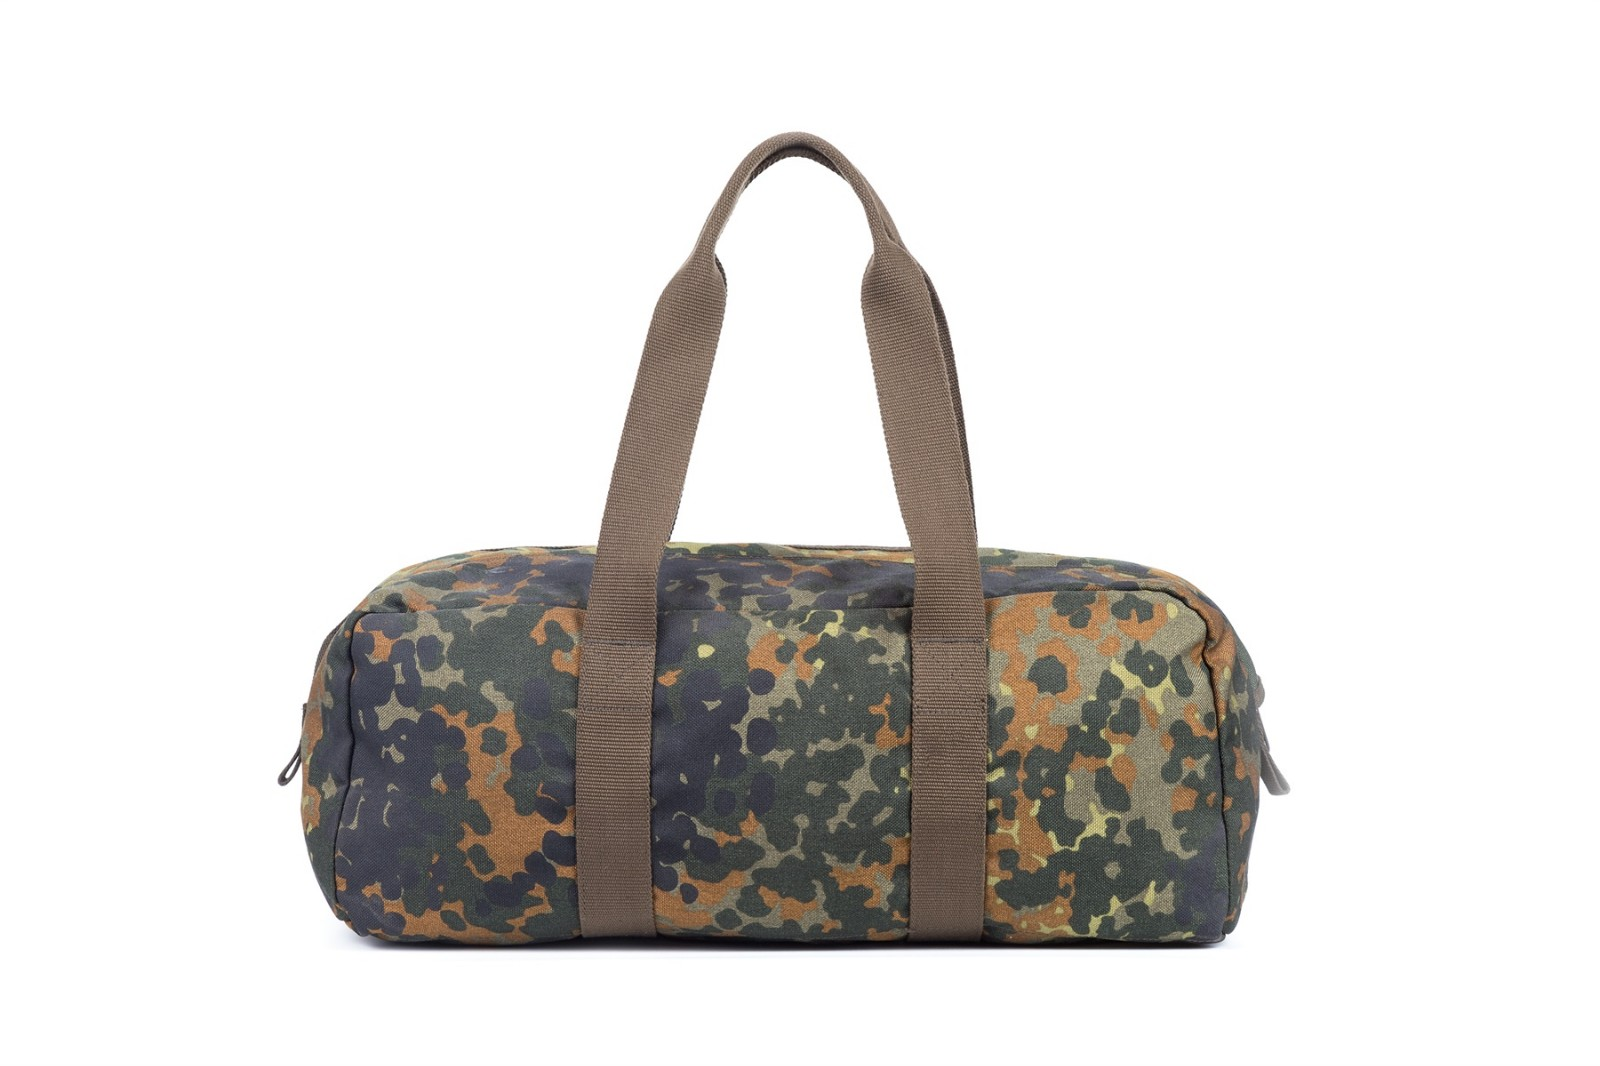 GF bags-Manufacturer Of Military Gear Bags, Military Tactical Bag On GF Bags